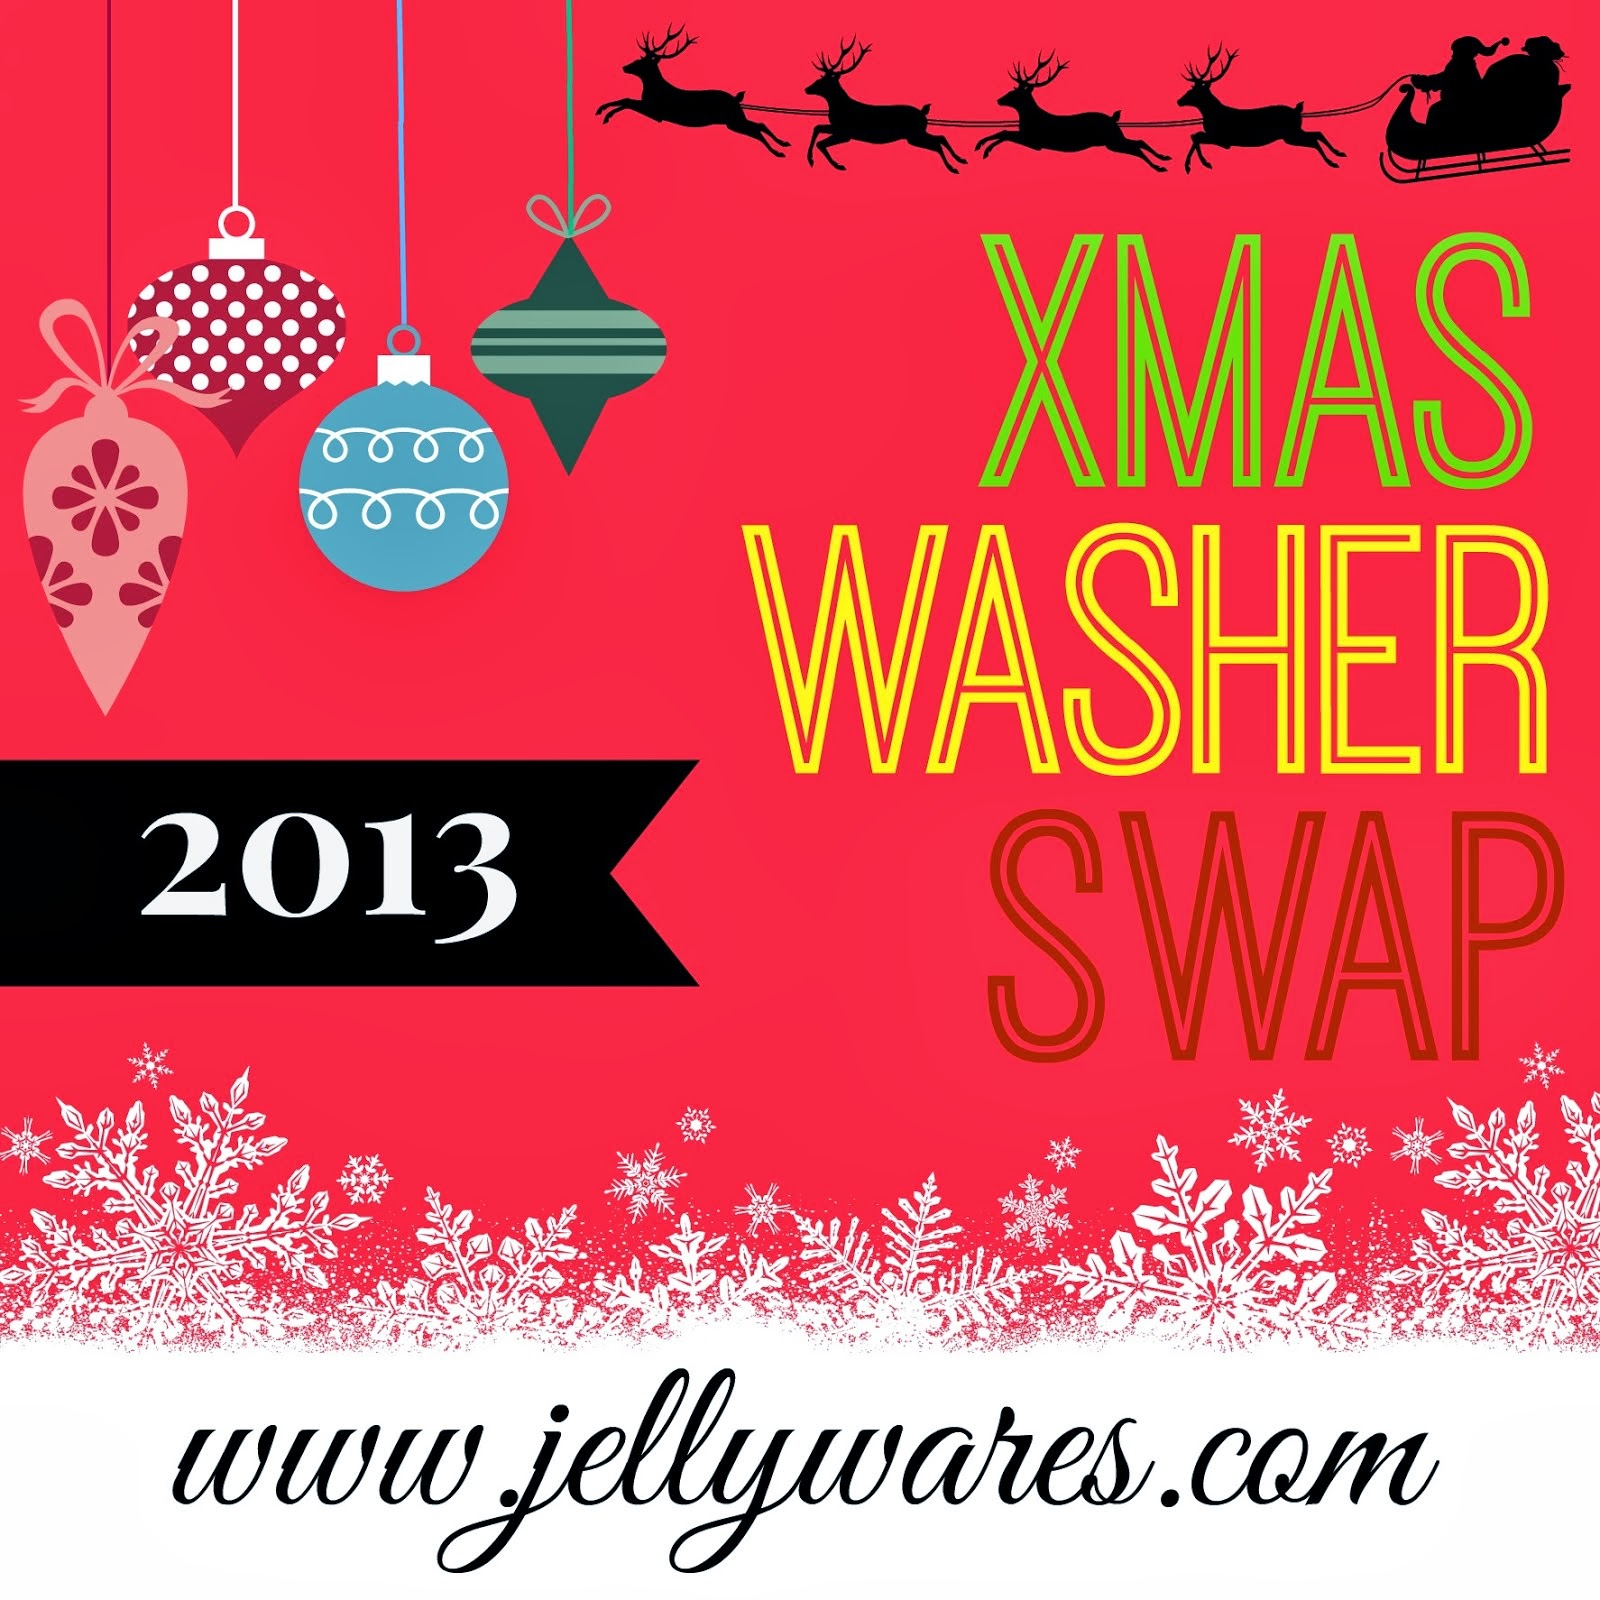 2013 xmas washer swap